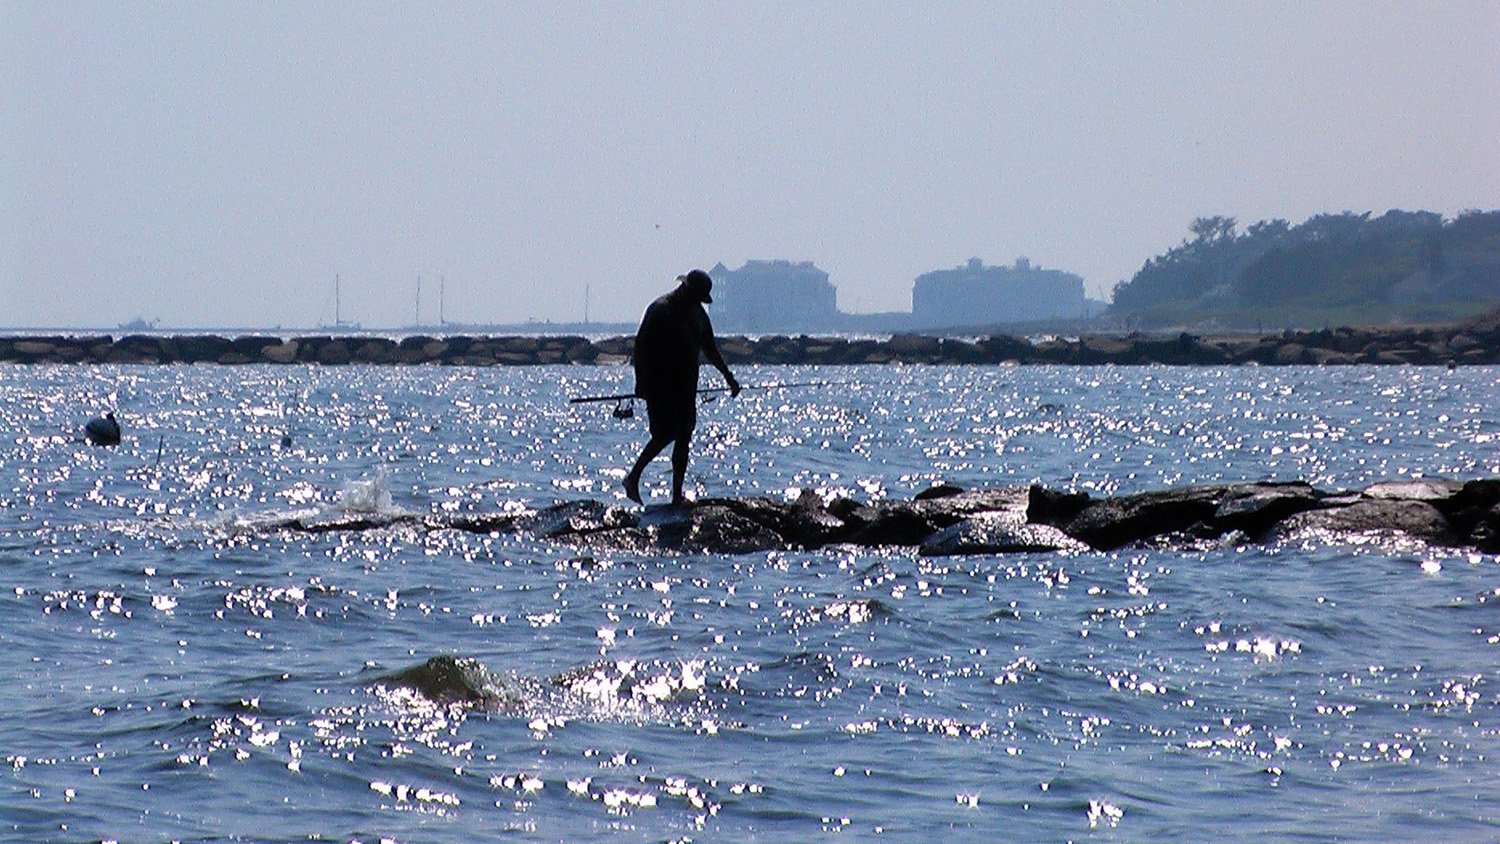 Fishing from a jetty